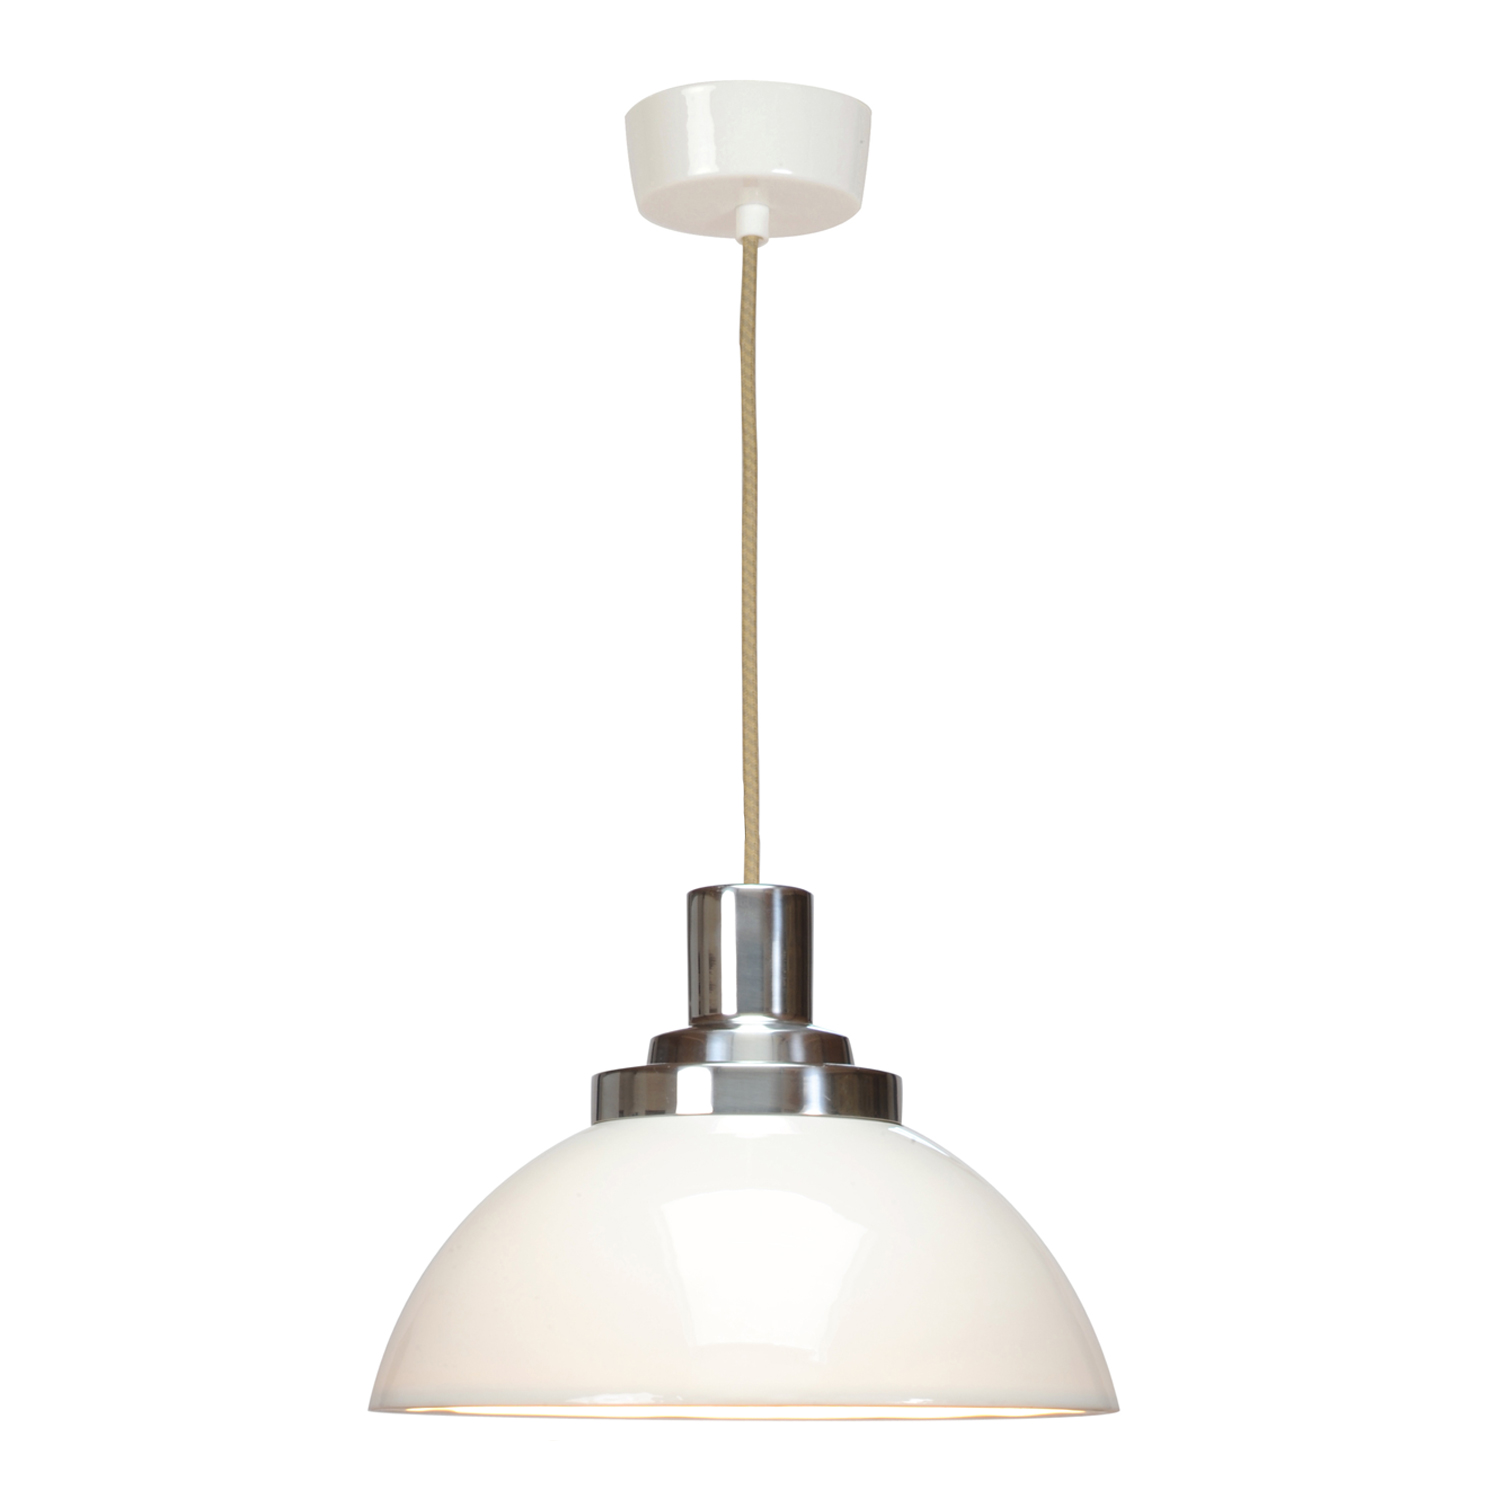 Cosmo Pendant Light, White